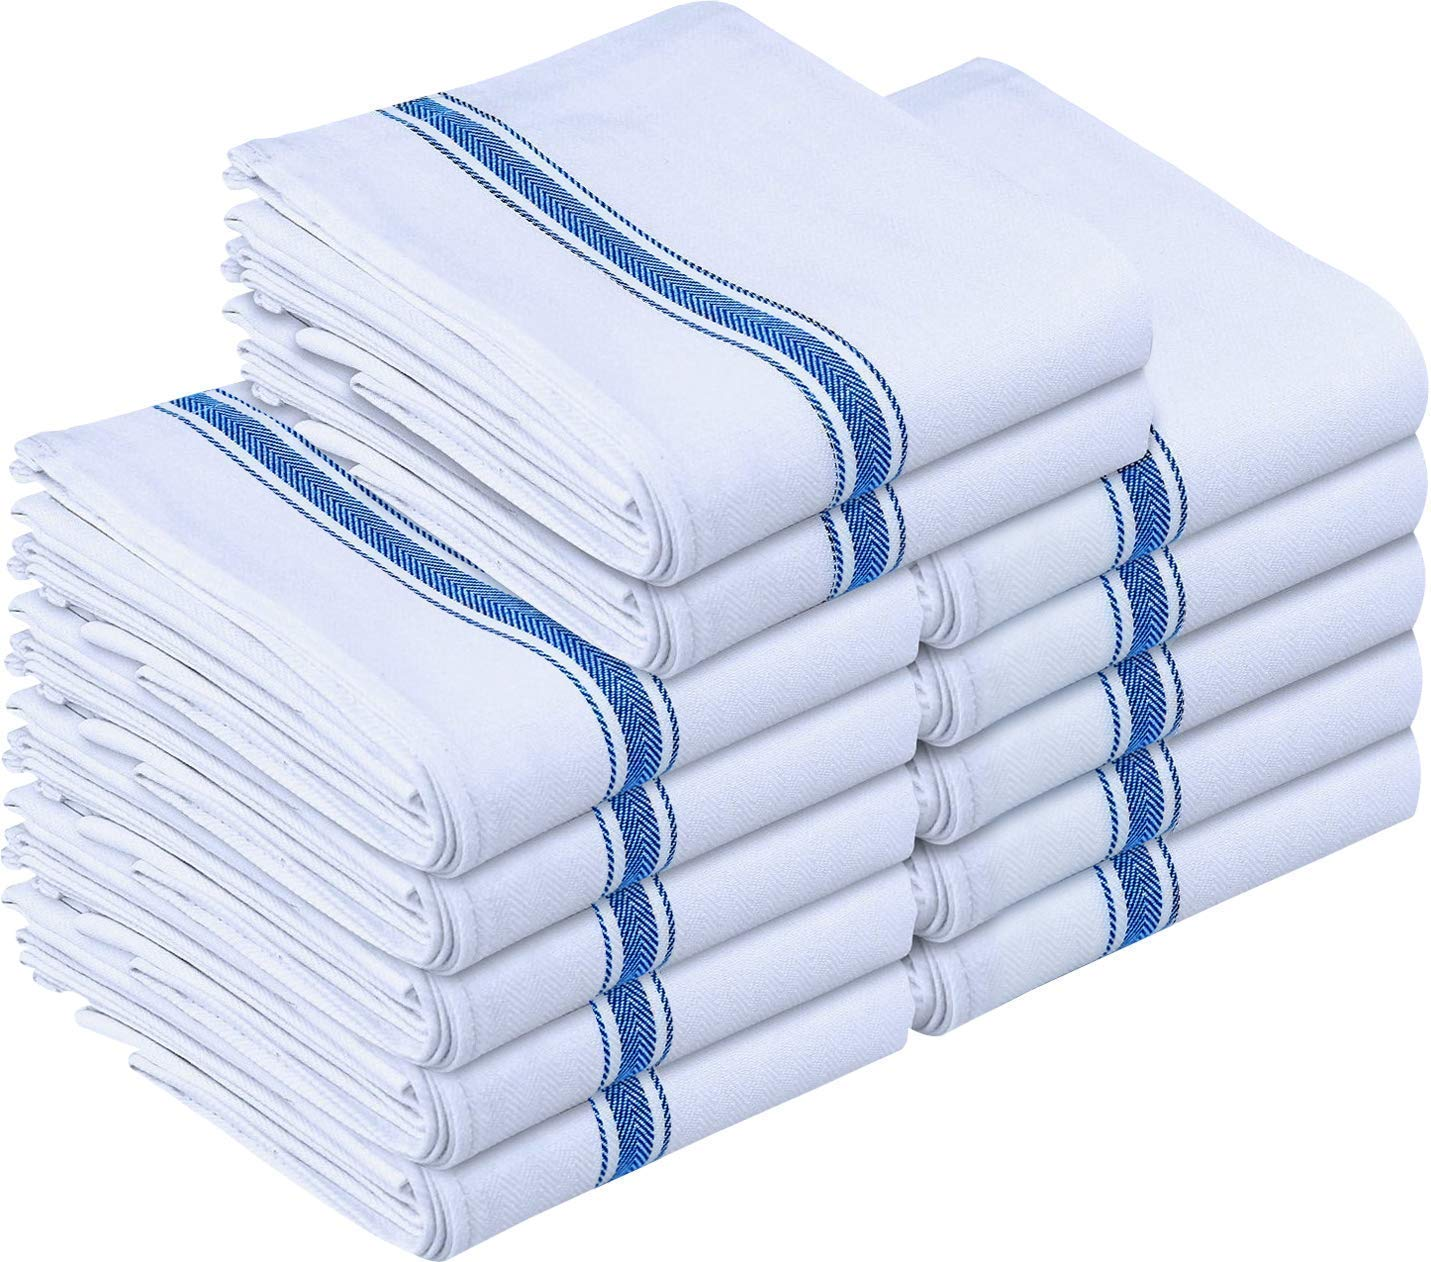 Utopia Towels 300 Dish Towels Bulk Pack 15 x 25 inches White Kitchen Towels, bar Towels and Tea Towels